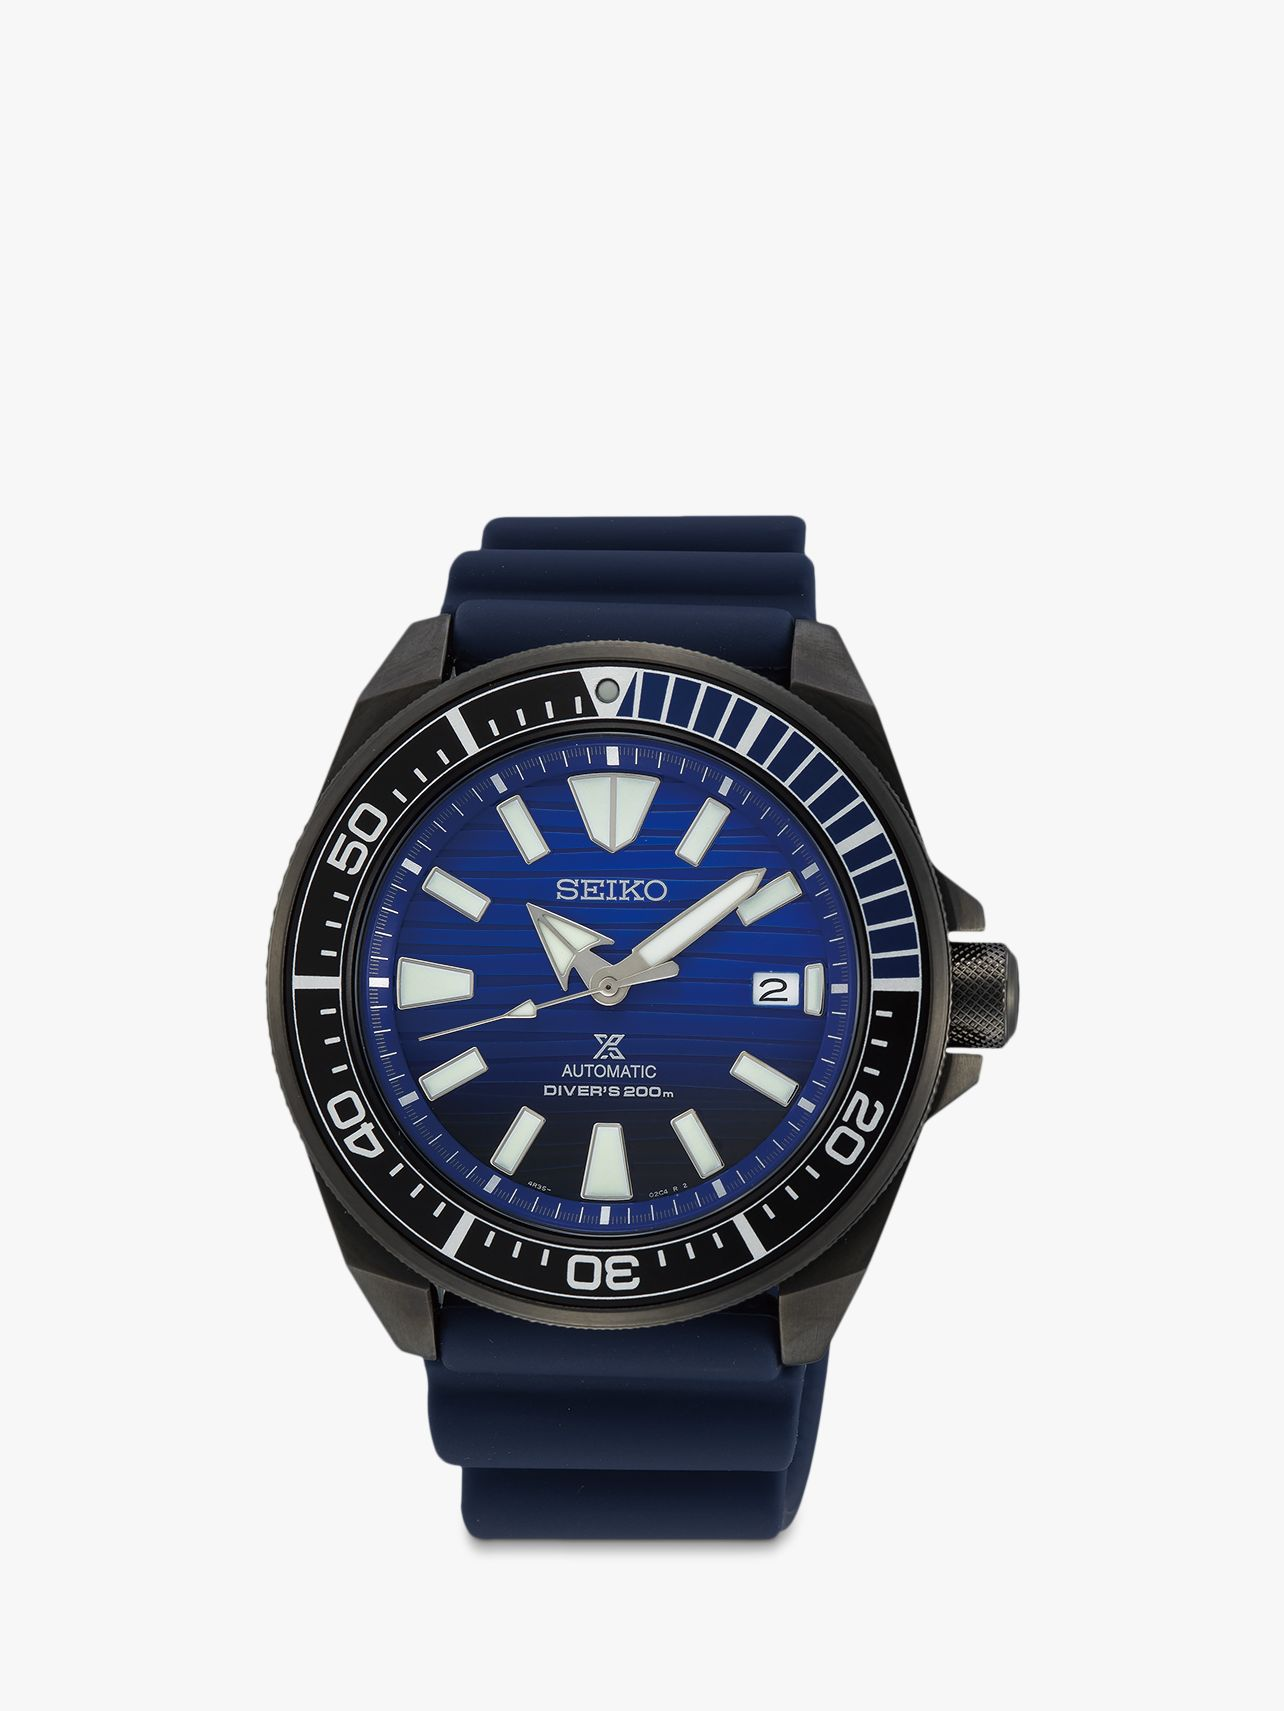 Seiko Seiko SRPD09K1 Men's Save The Ocean Date Automatic Silicone Strap Watch, Navy